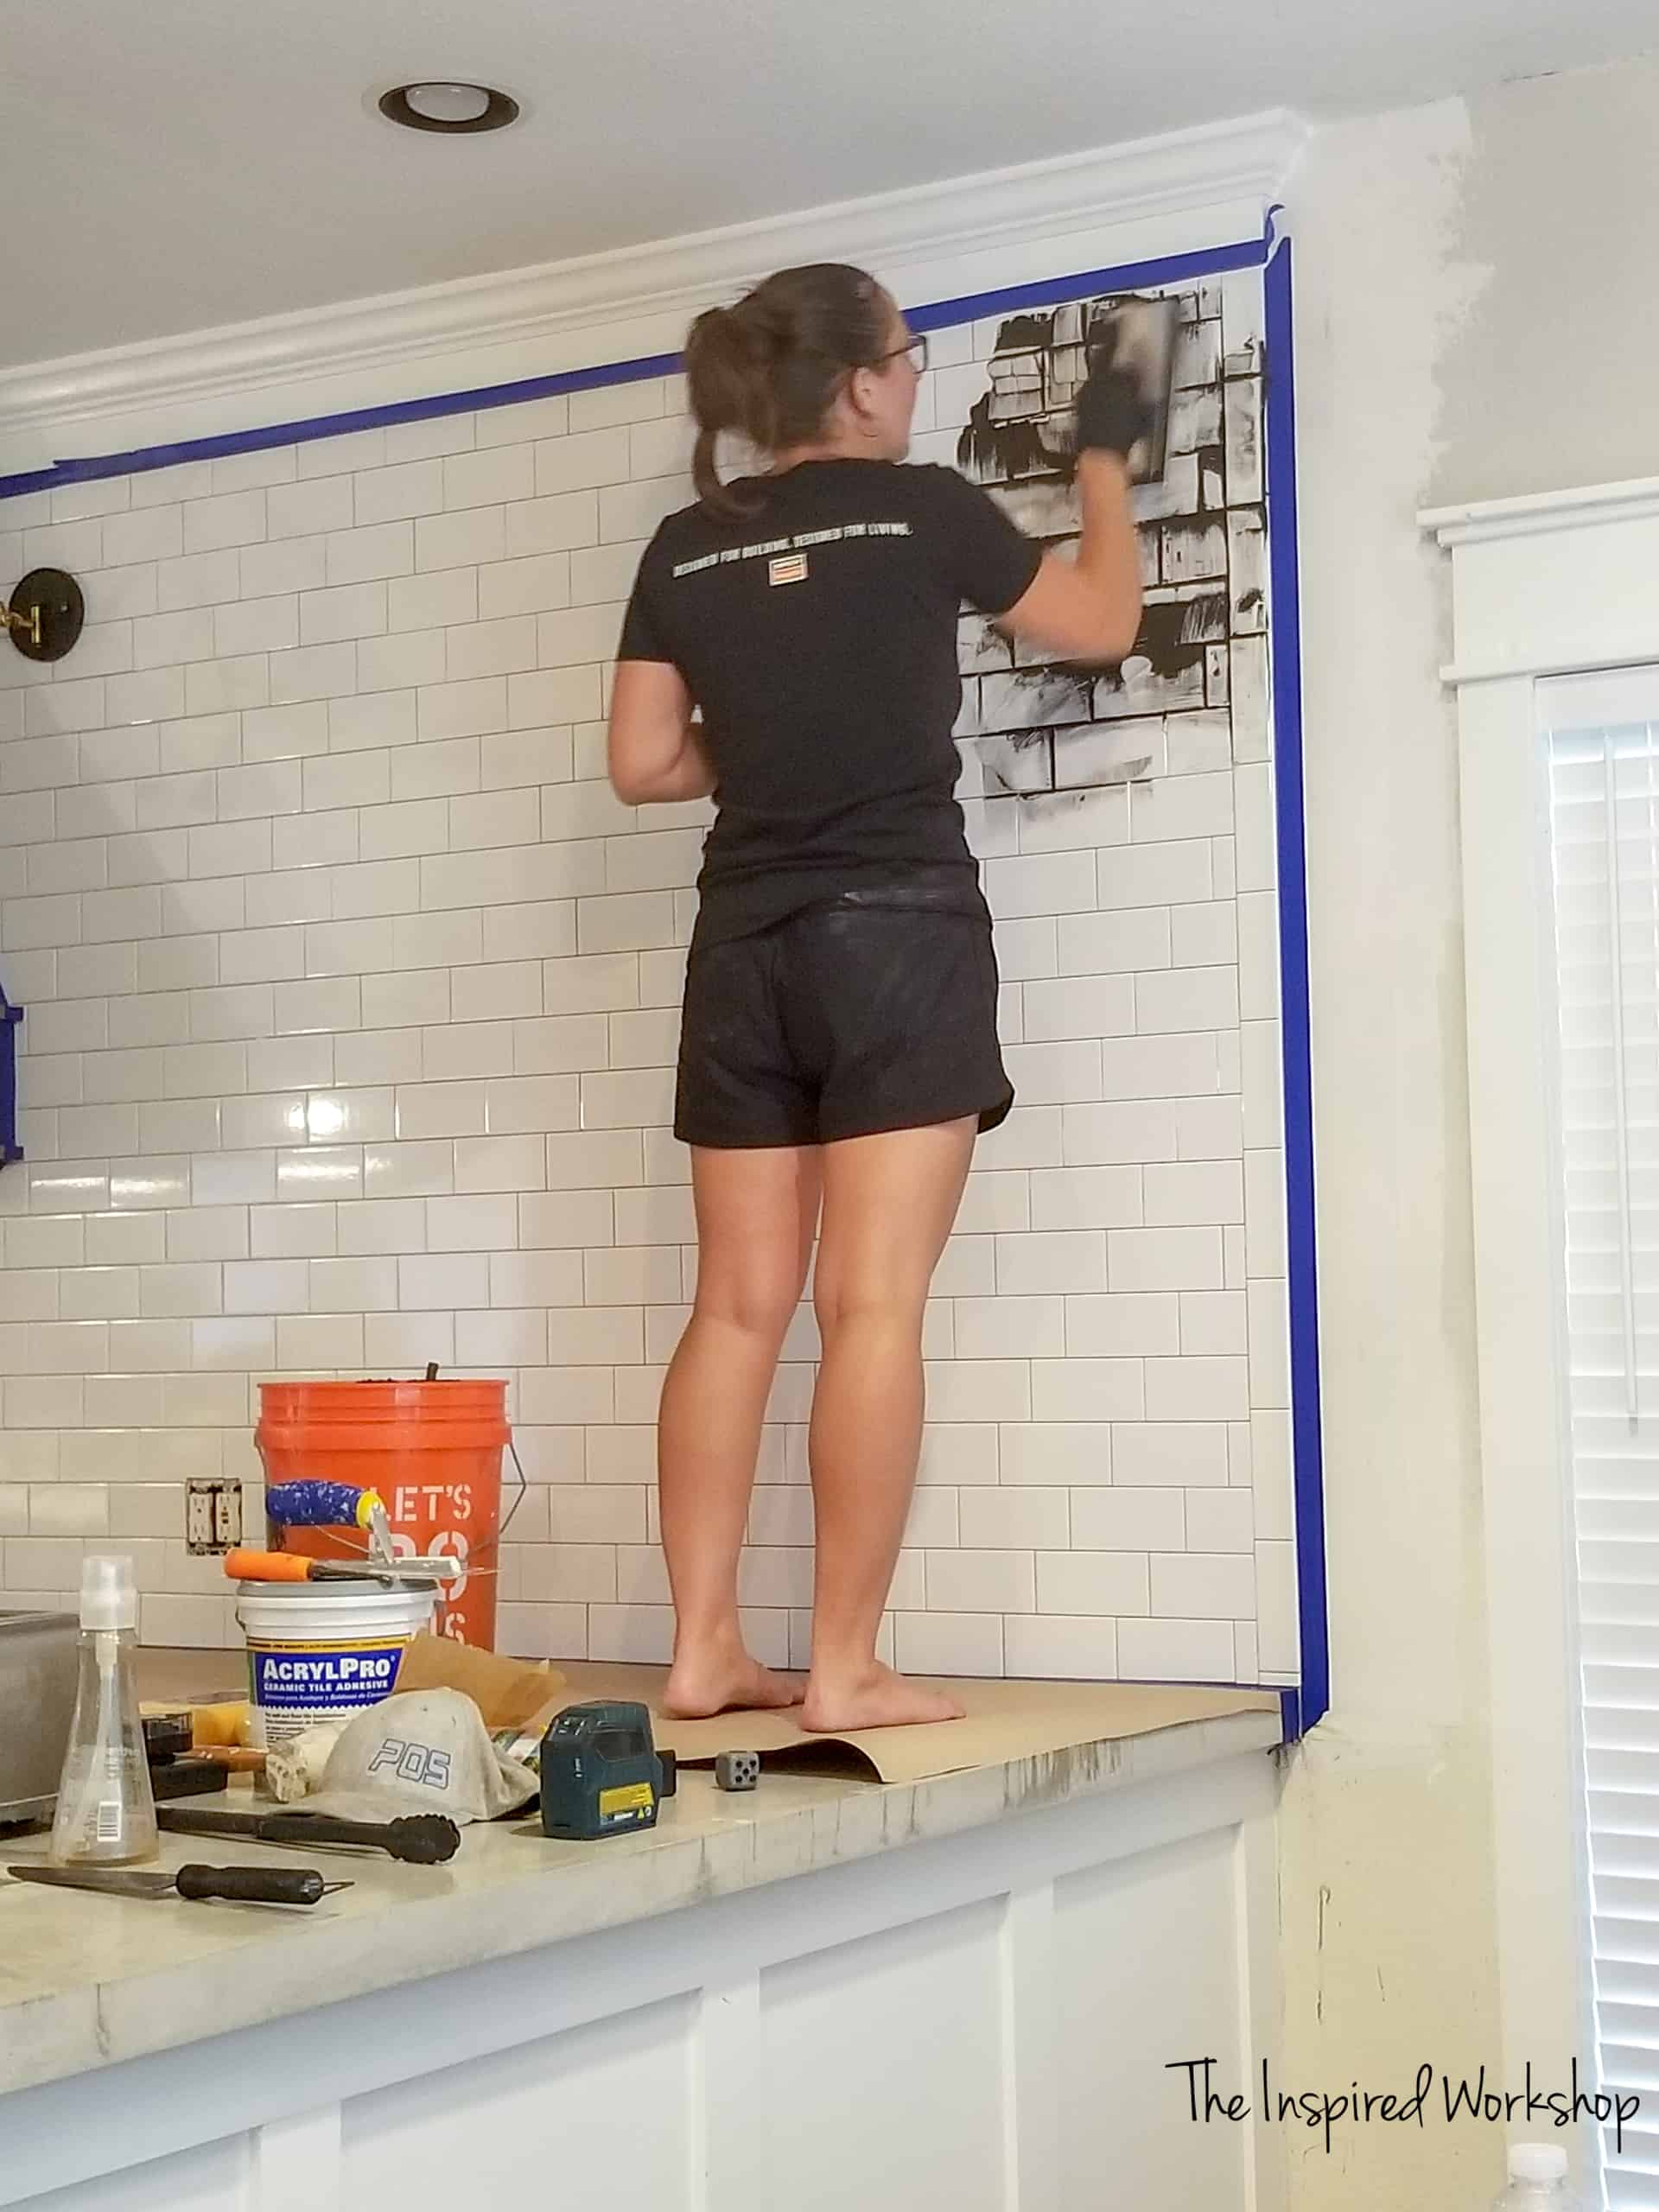 Tiling and grouting a kitchen statement wall